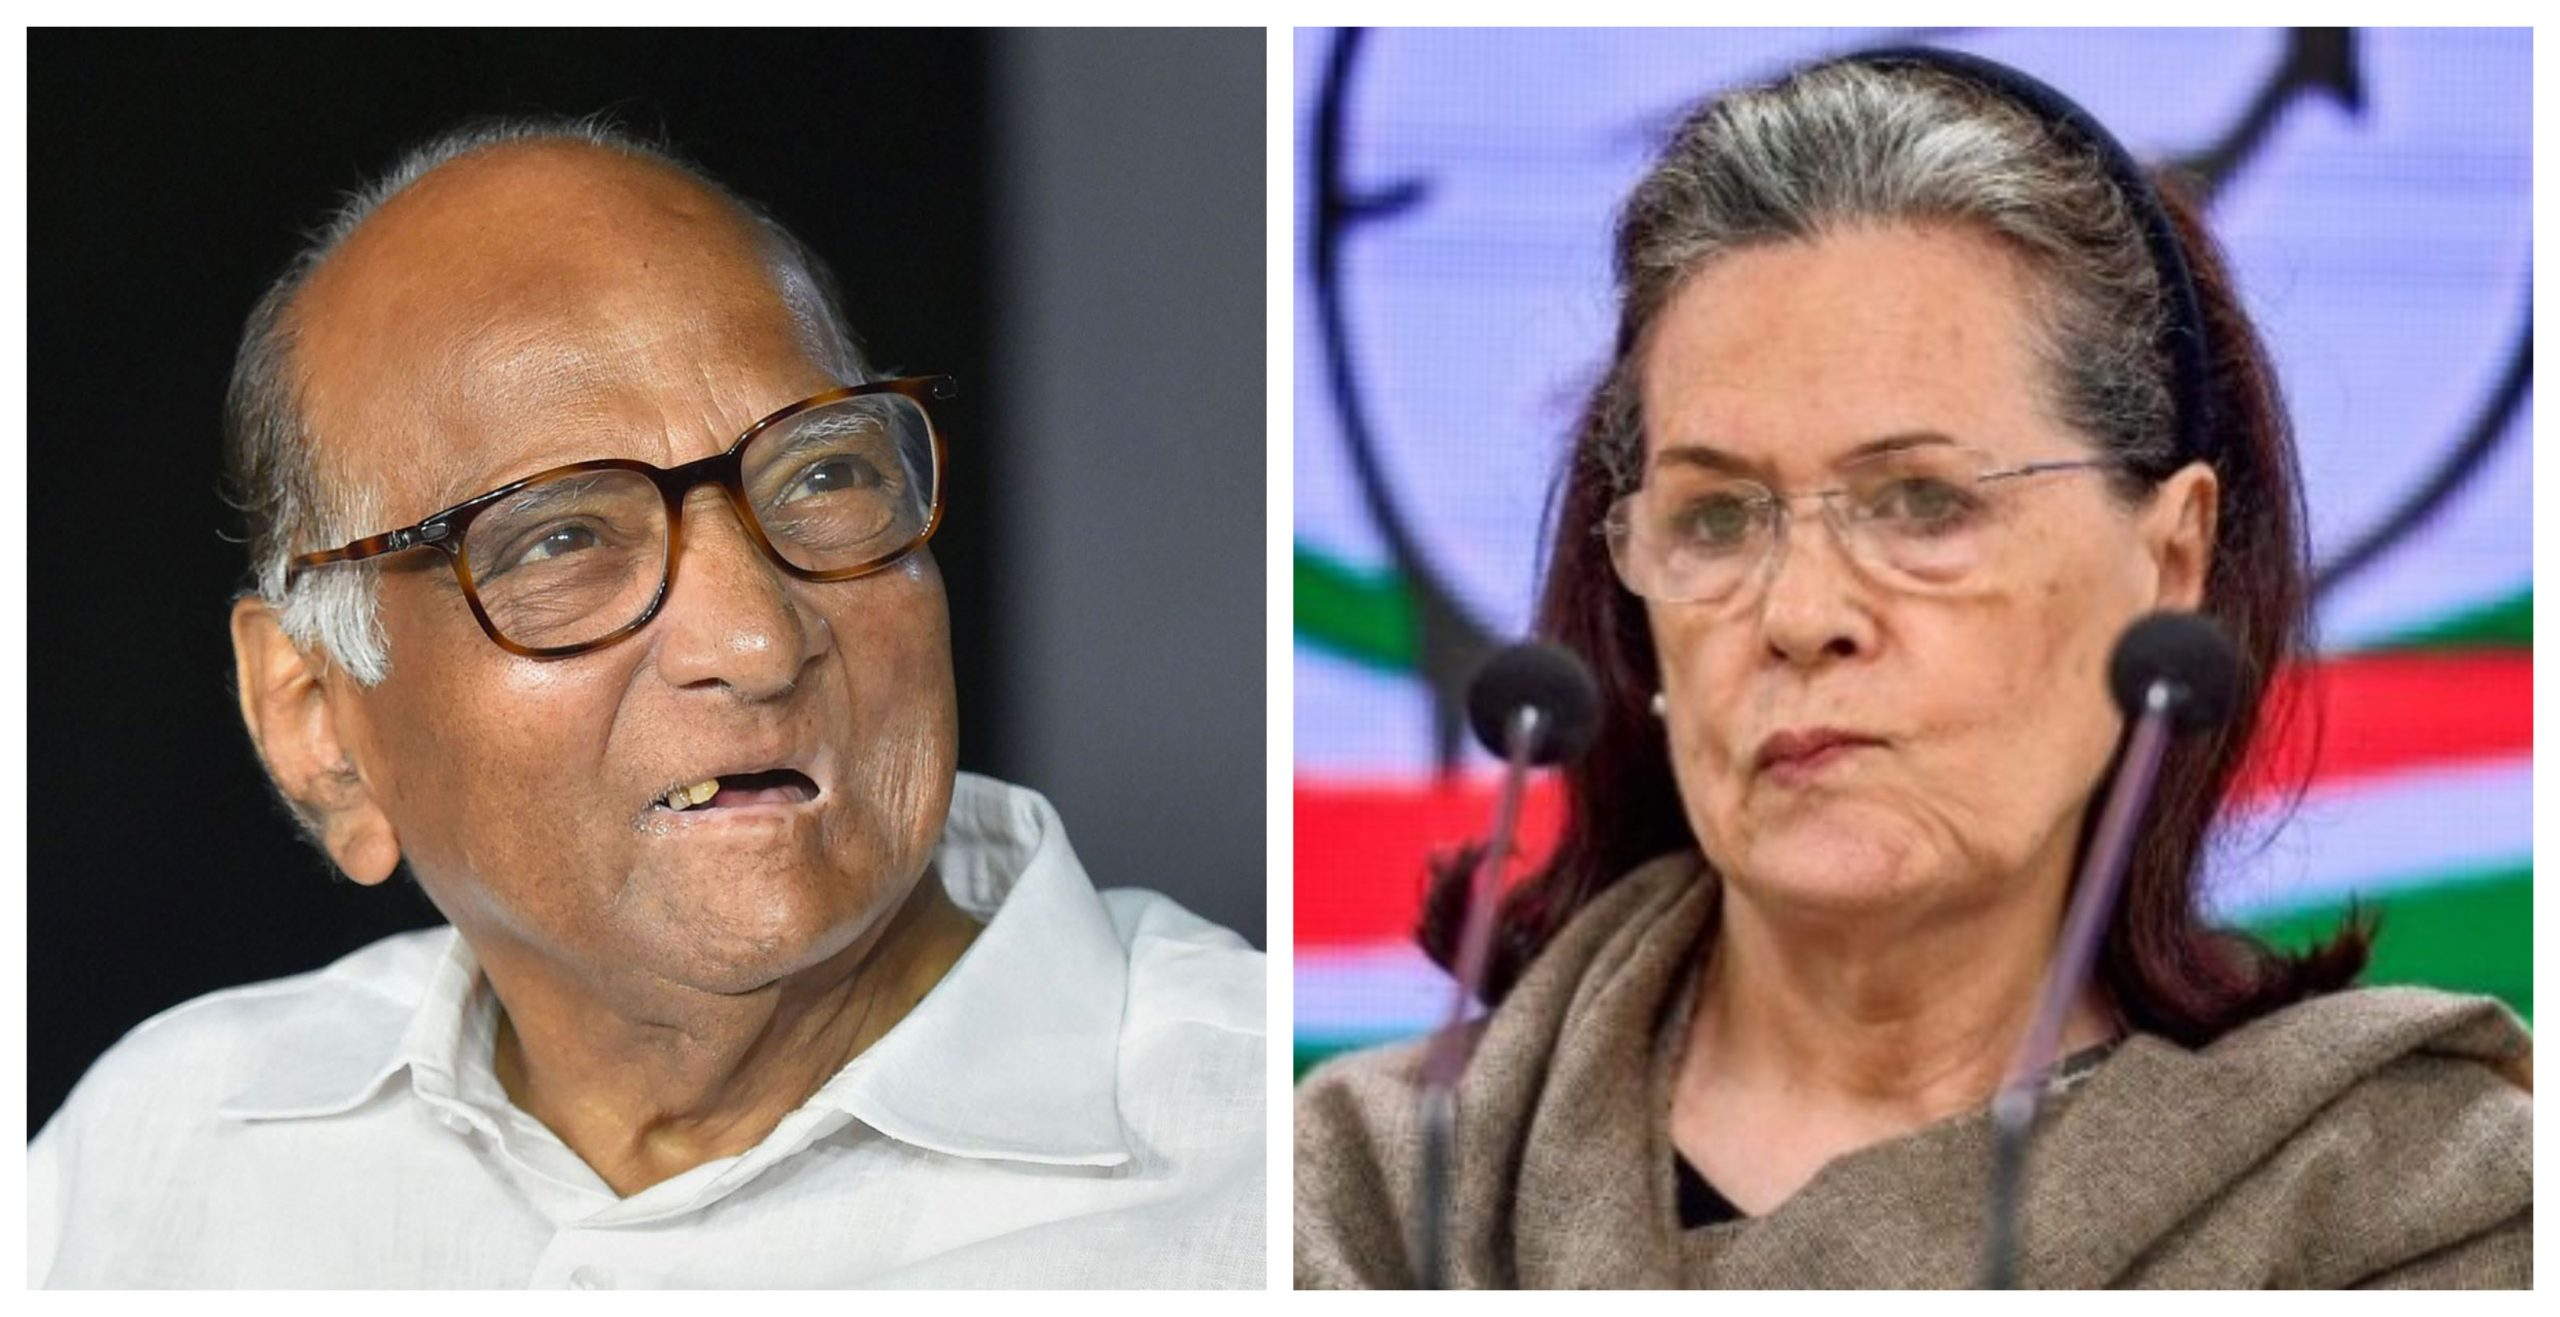 Sharad Pawar likely to replace Sonia Gandhi as the new UPA Chairperson